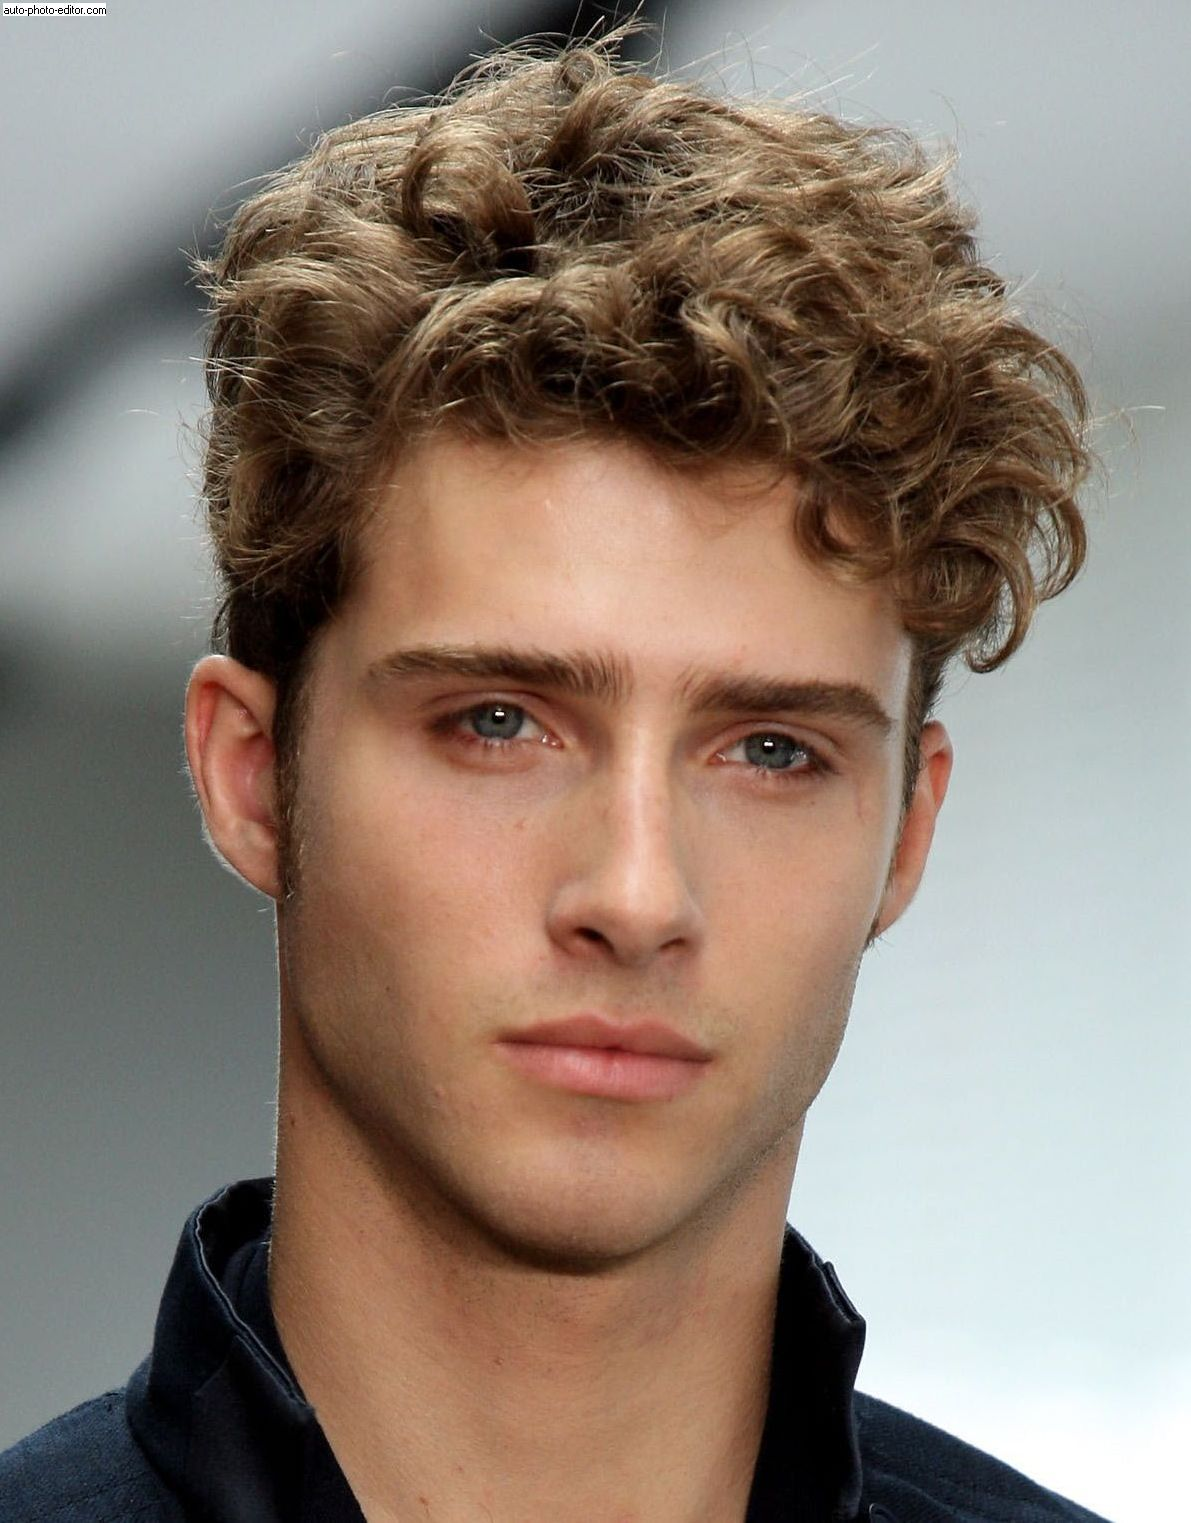 Curly Hairstyles For Men Fave Hairstyles Men S Curly Hairstyles Curly Hair Men Thick Curly Hair